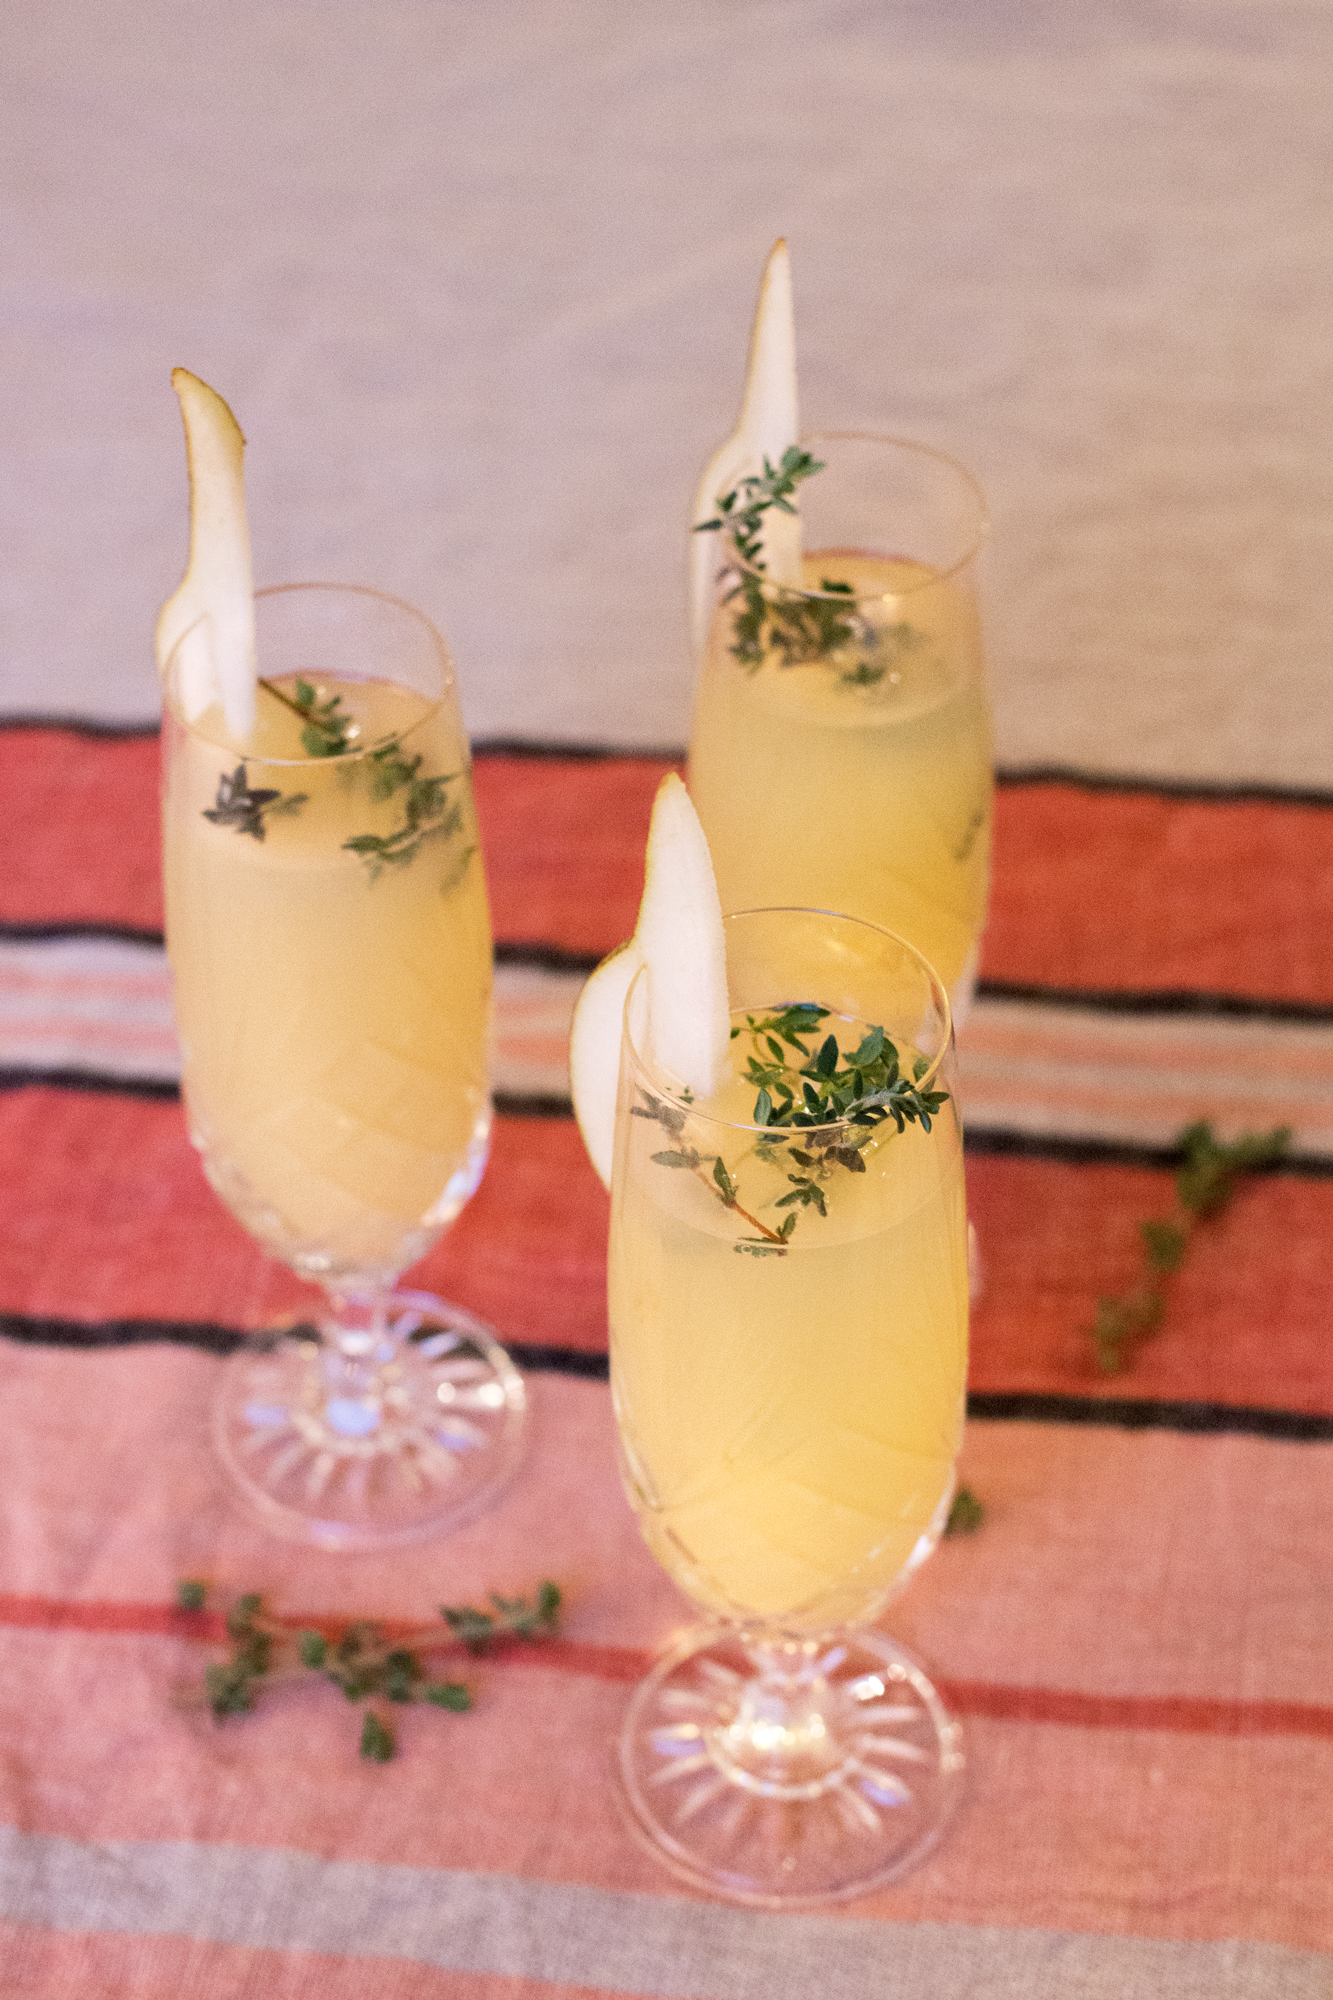 Pear-and-Thyme-Sparkling-Cocktail-Review-by-Bottle-Bitches.png